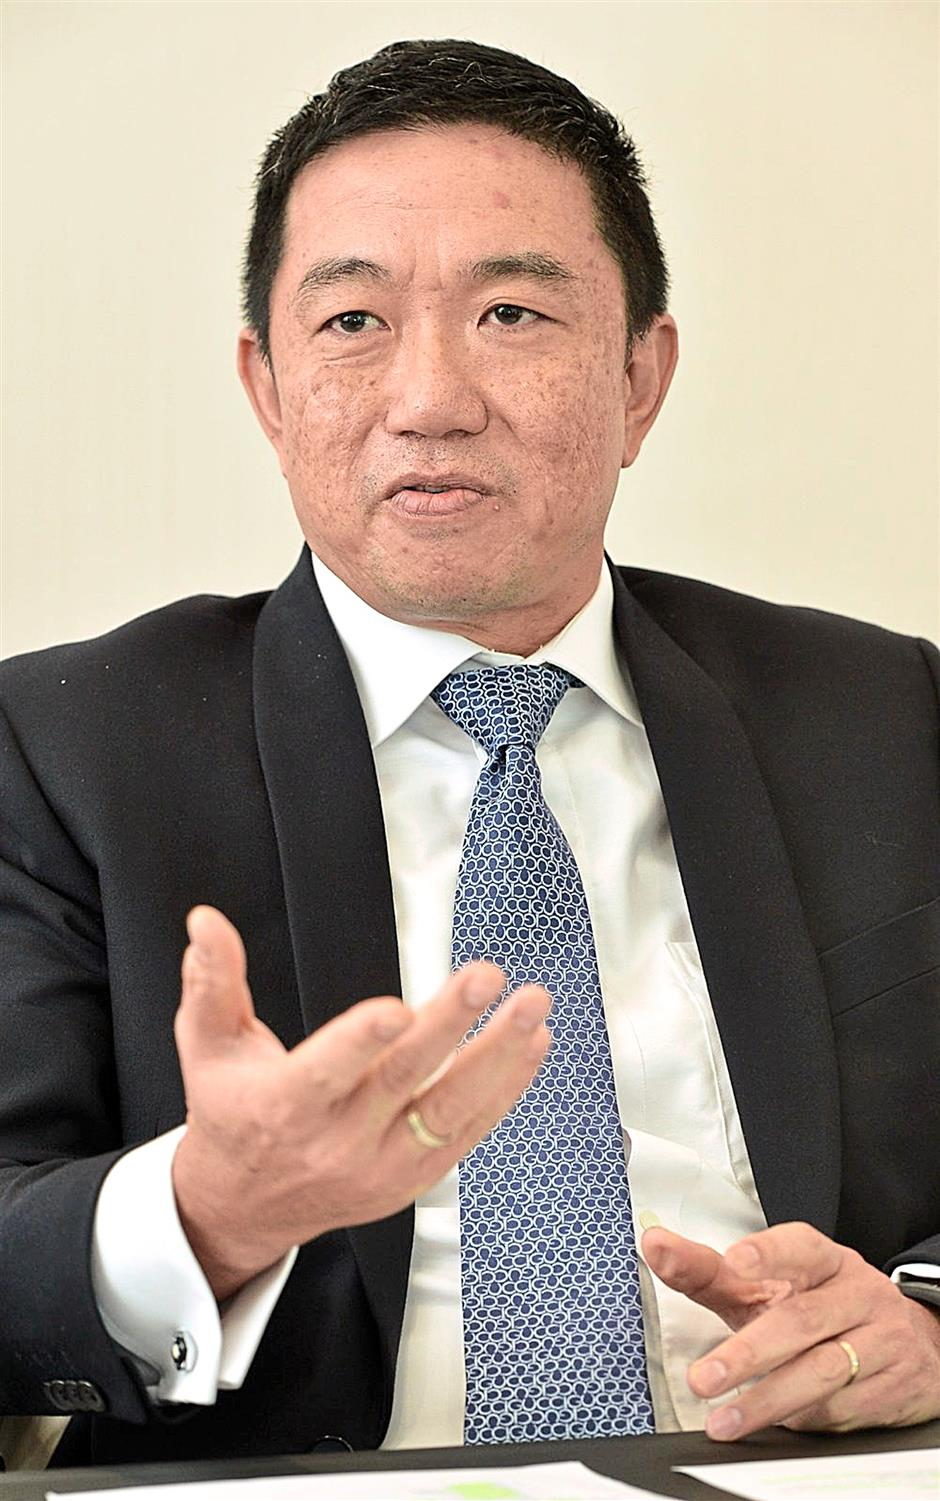 Chiang said business in Malaysia is growing and  the company needs more talent.